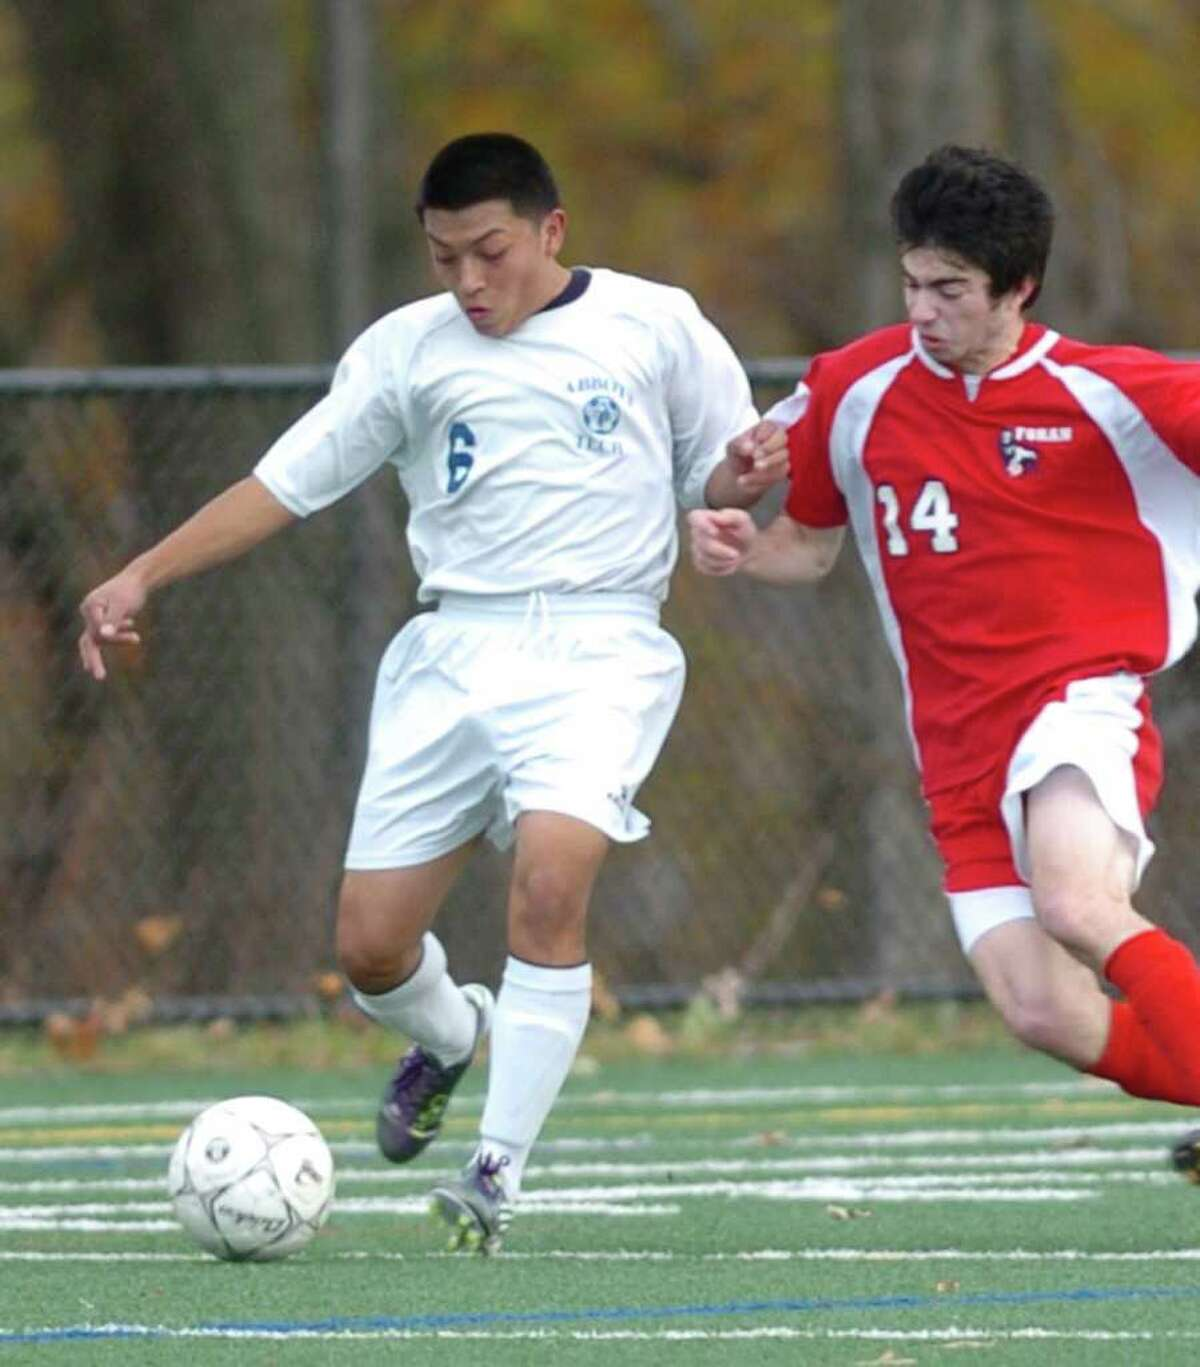 Foran's 14, Robert Millspaugh competes with Abbott Tech's 6, Marco Pauta during the soccer game at Broadview Middle Schoot Nov. 10, 2010.